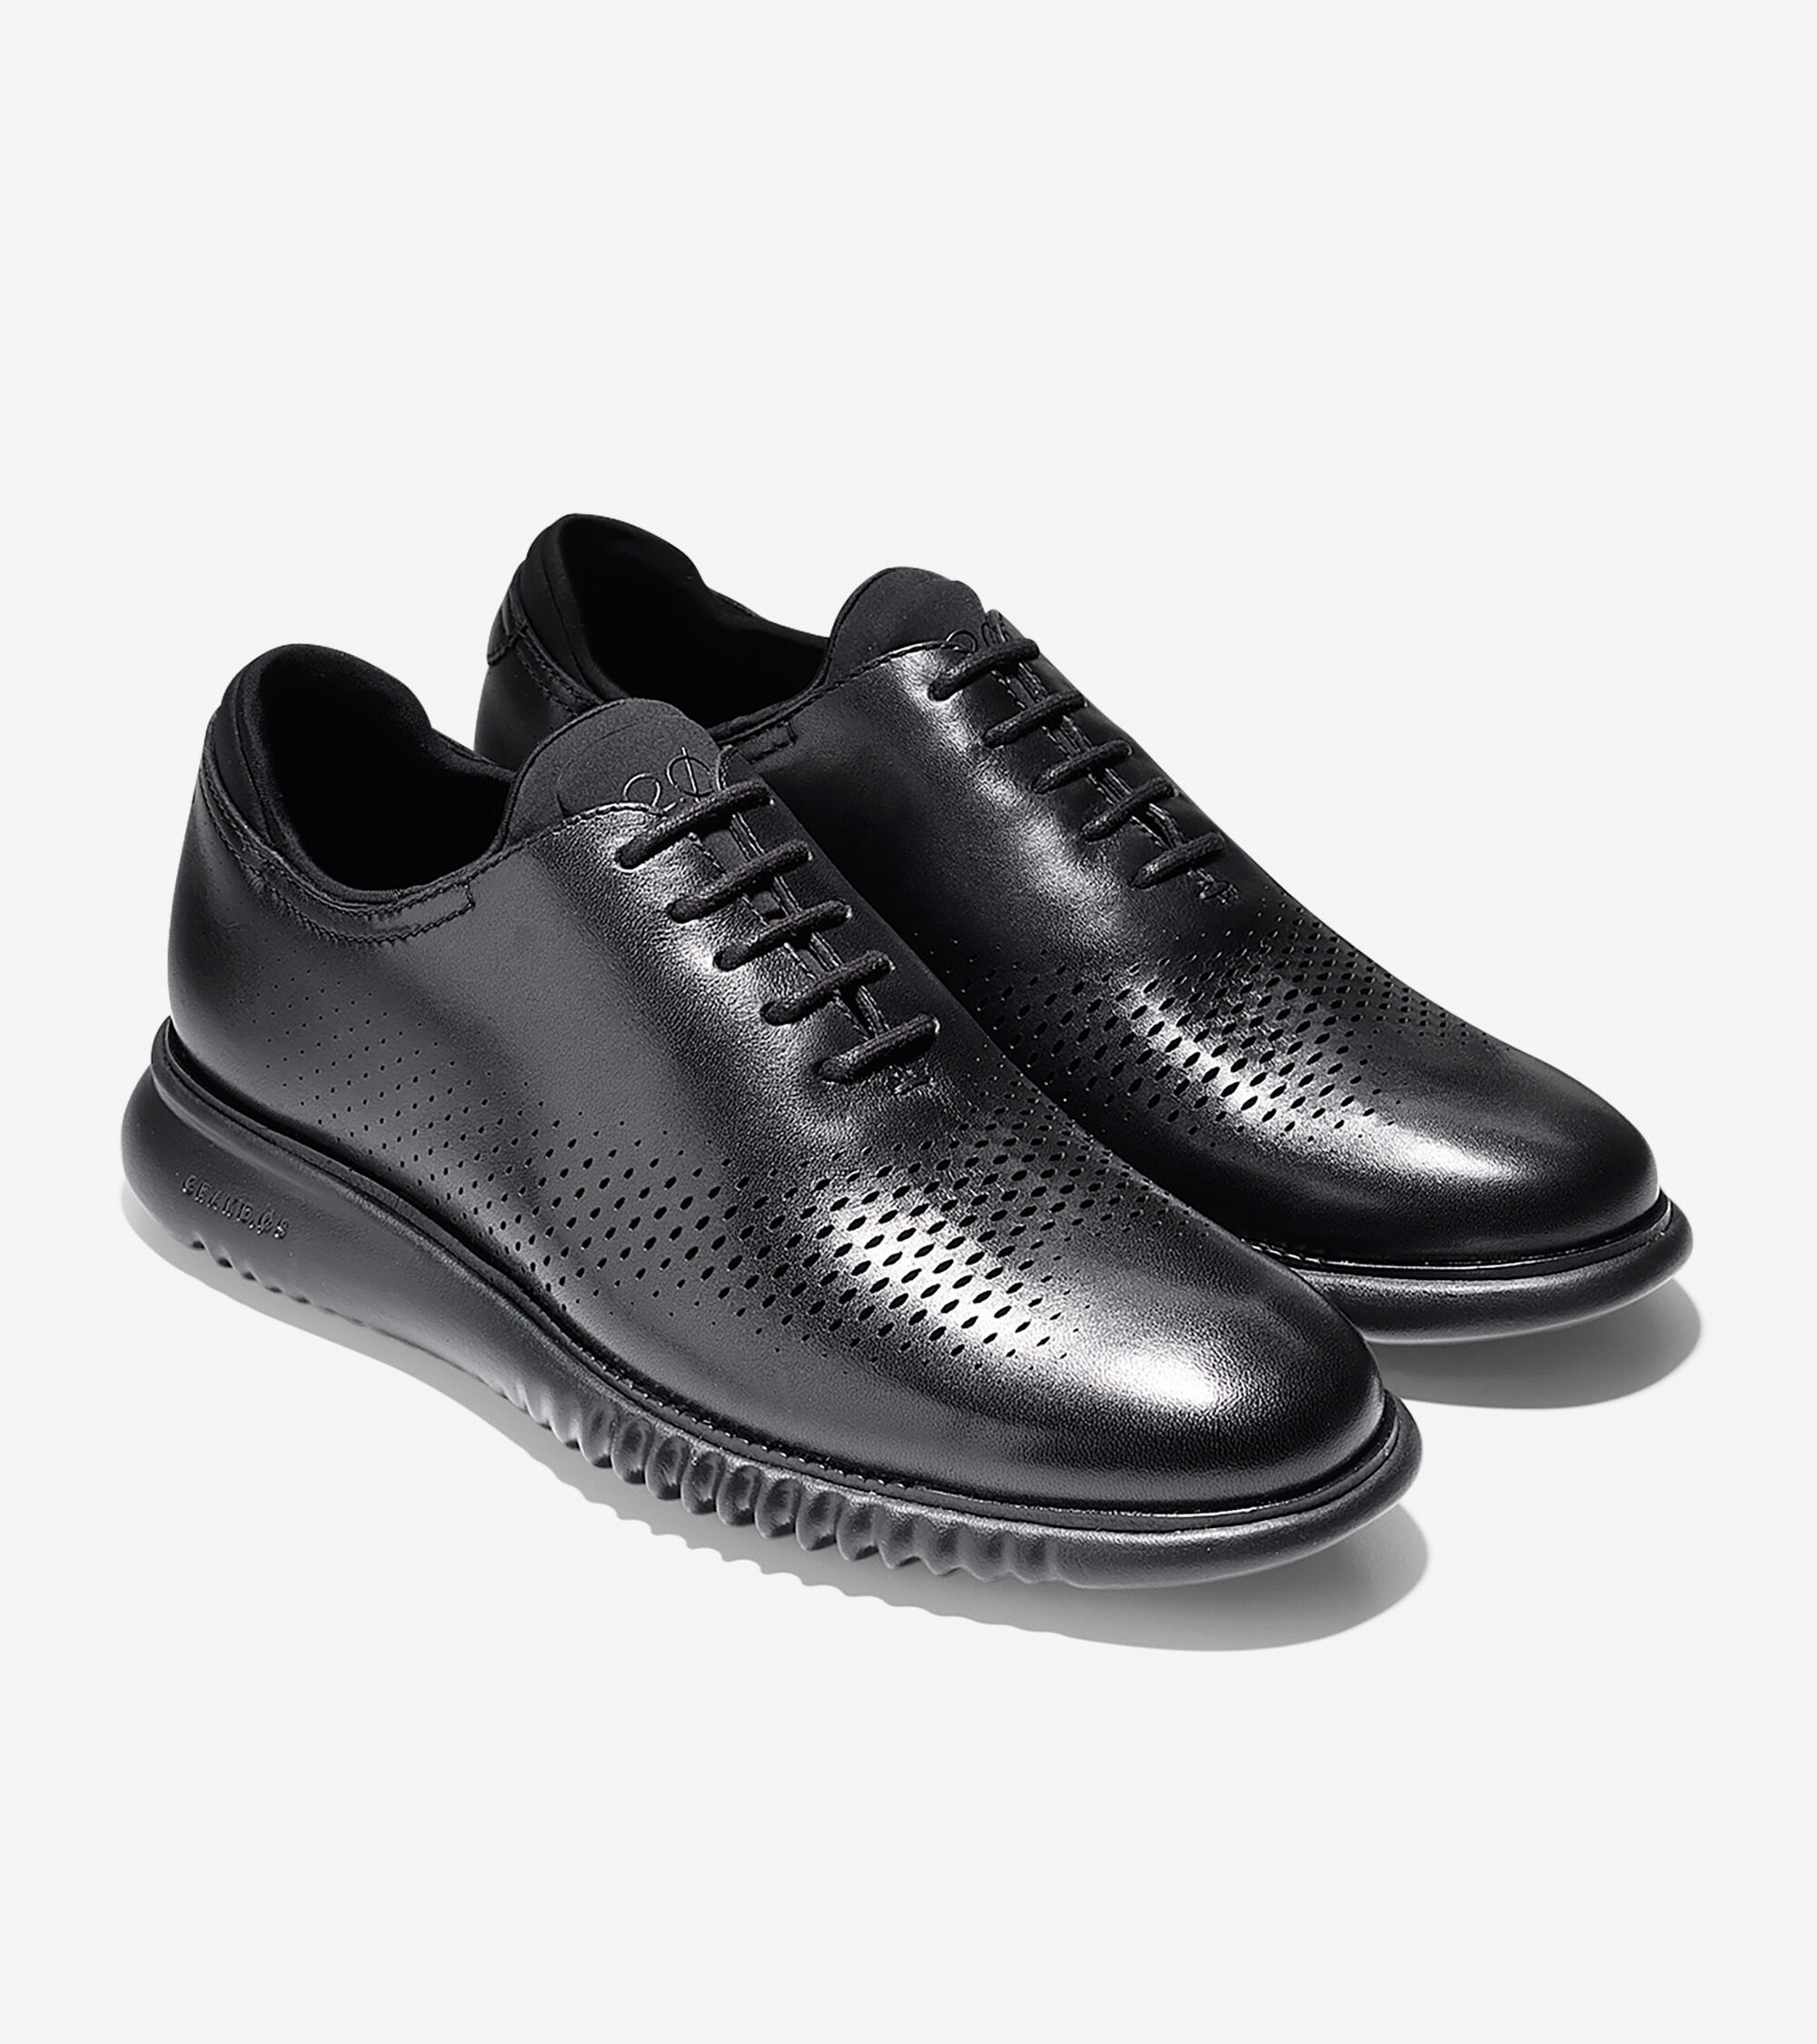 Cole Haan Dress Shoes On Sale